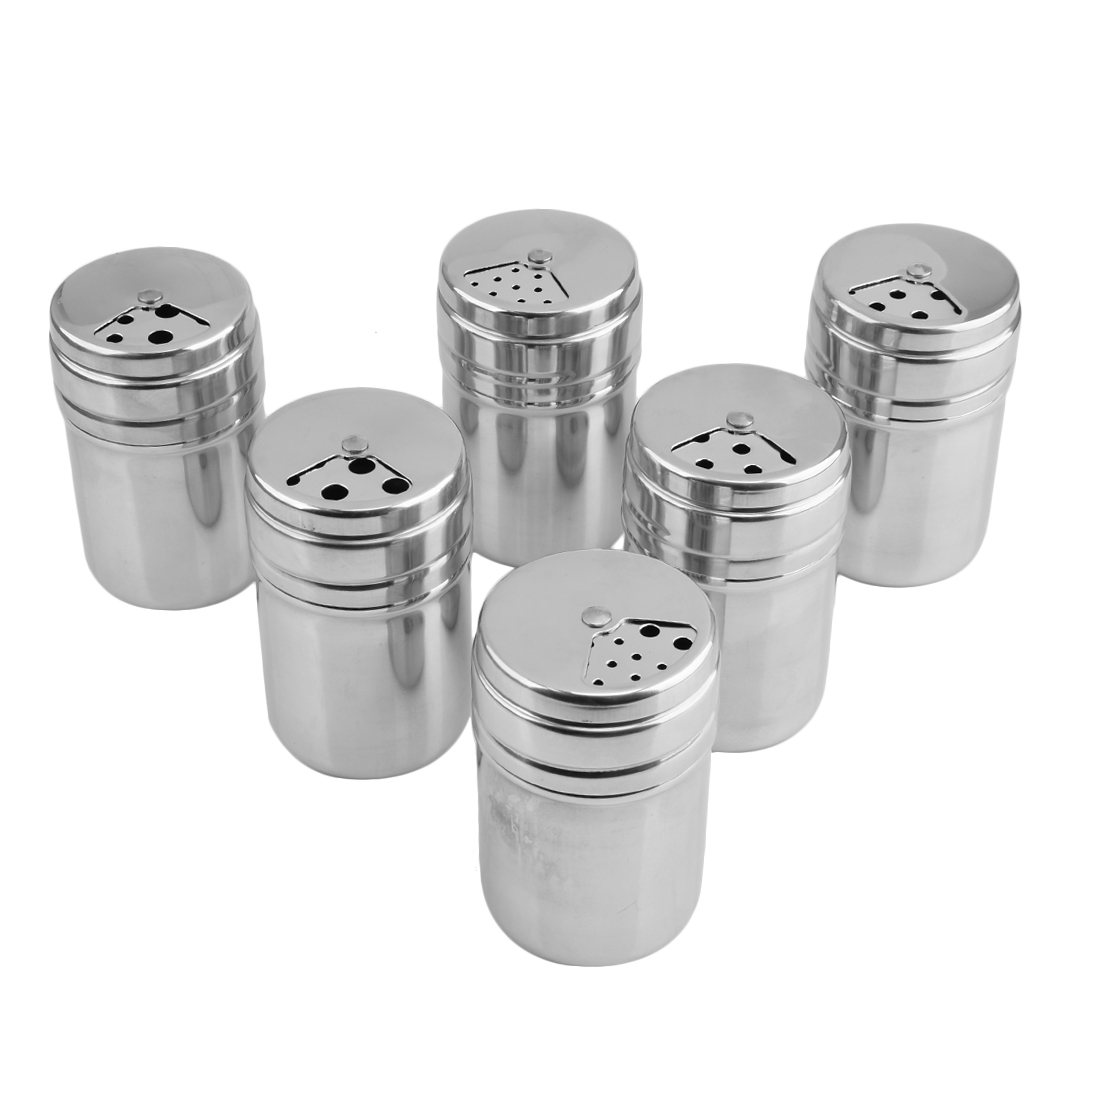 Click here to buy 6Pcs Salt Sugar Spice Pepper Shaker Seasoning Cans Stainless Steel Bottles Container with Rotating Cover for Kitchen Cooking and Outdoor....